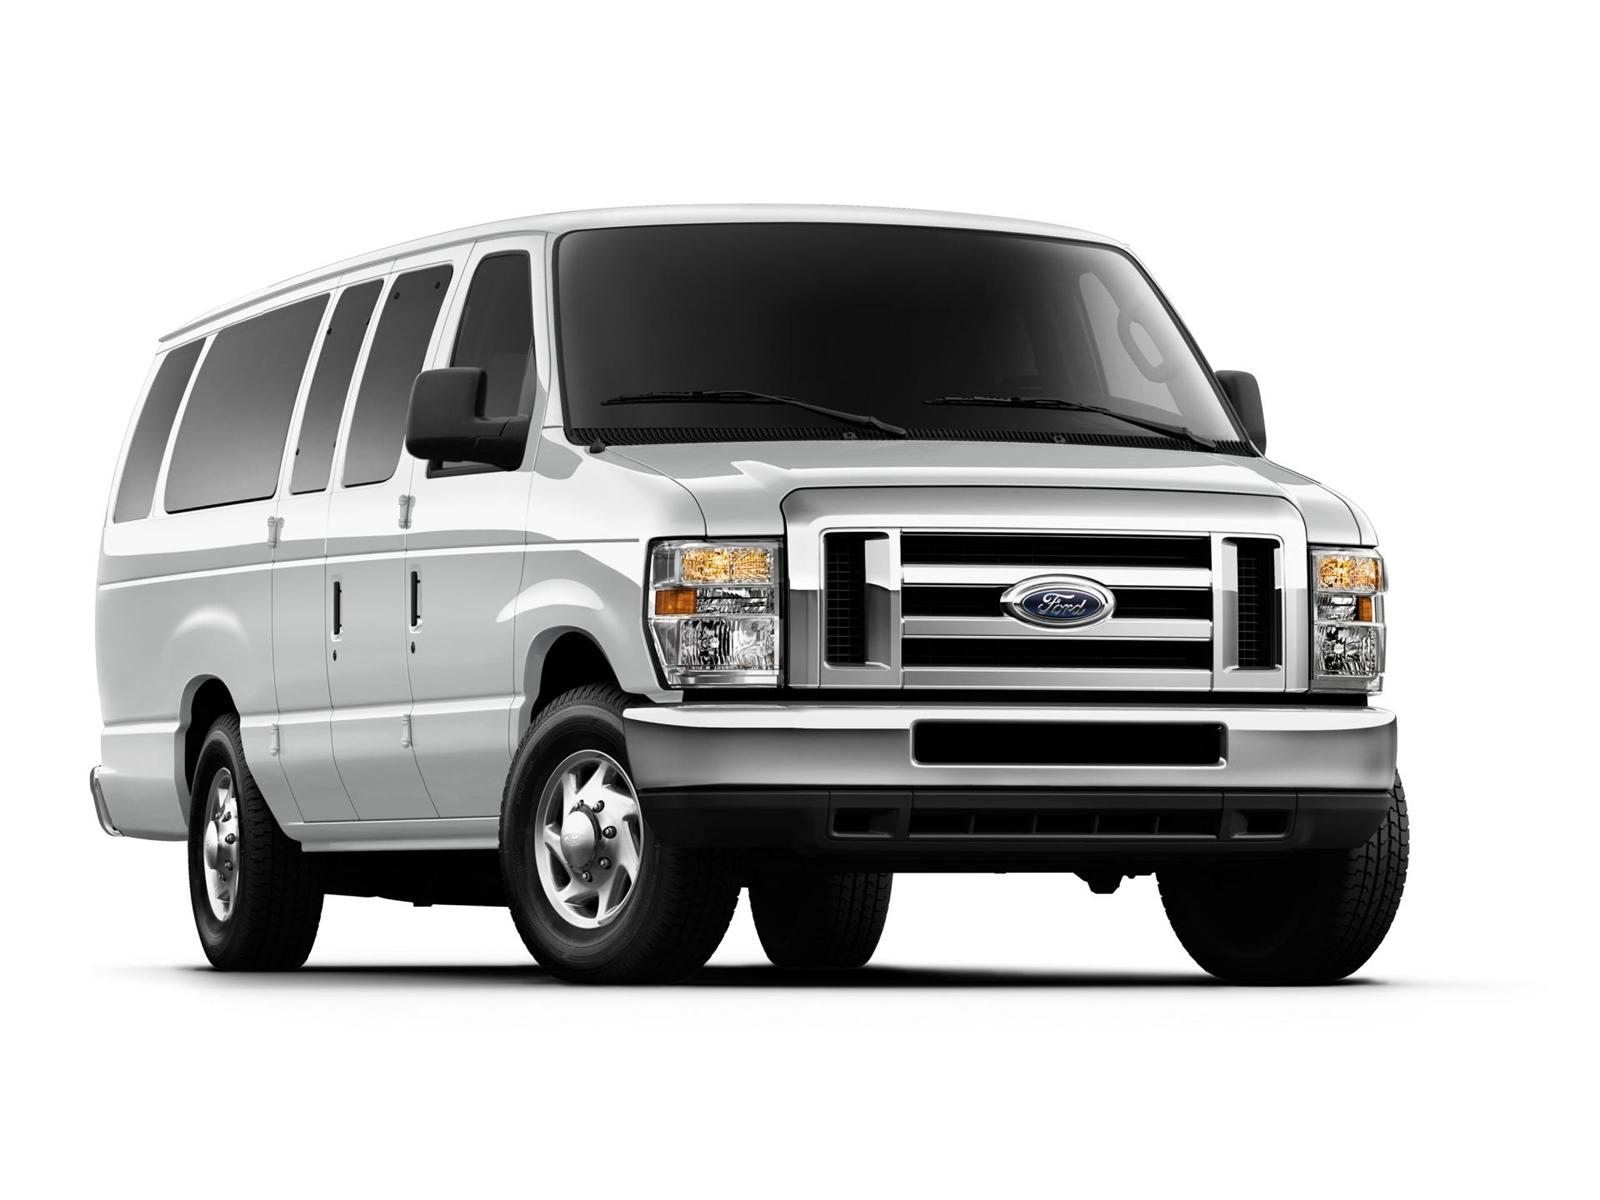 Ford E-Series Van #16